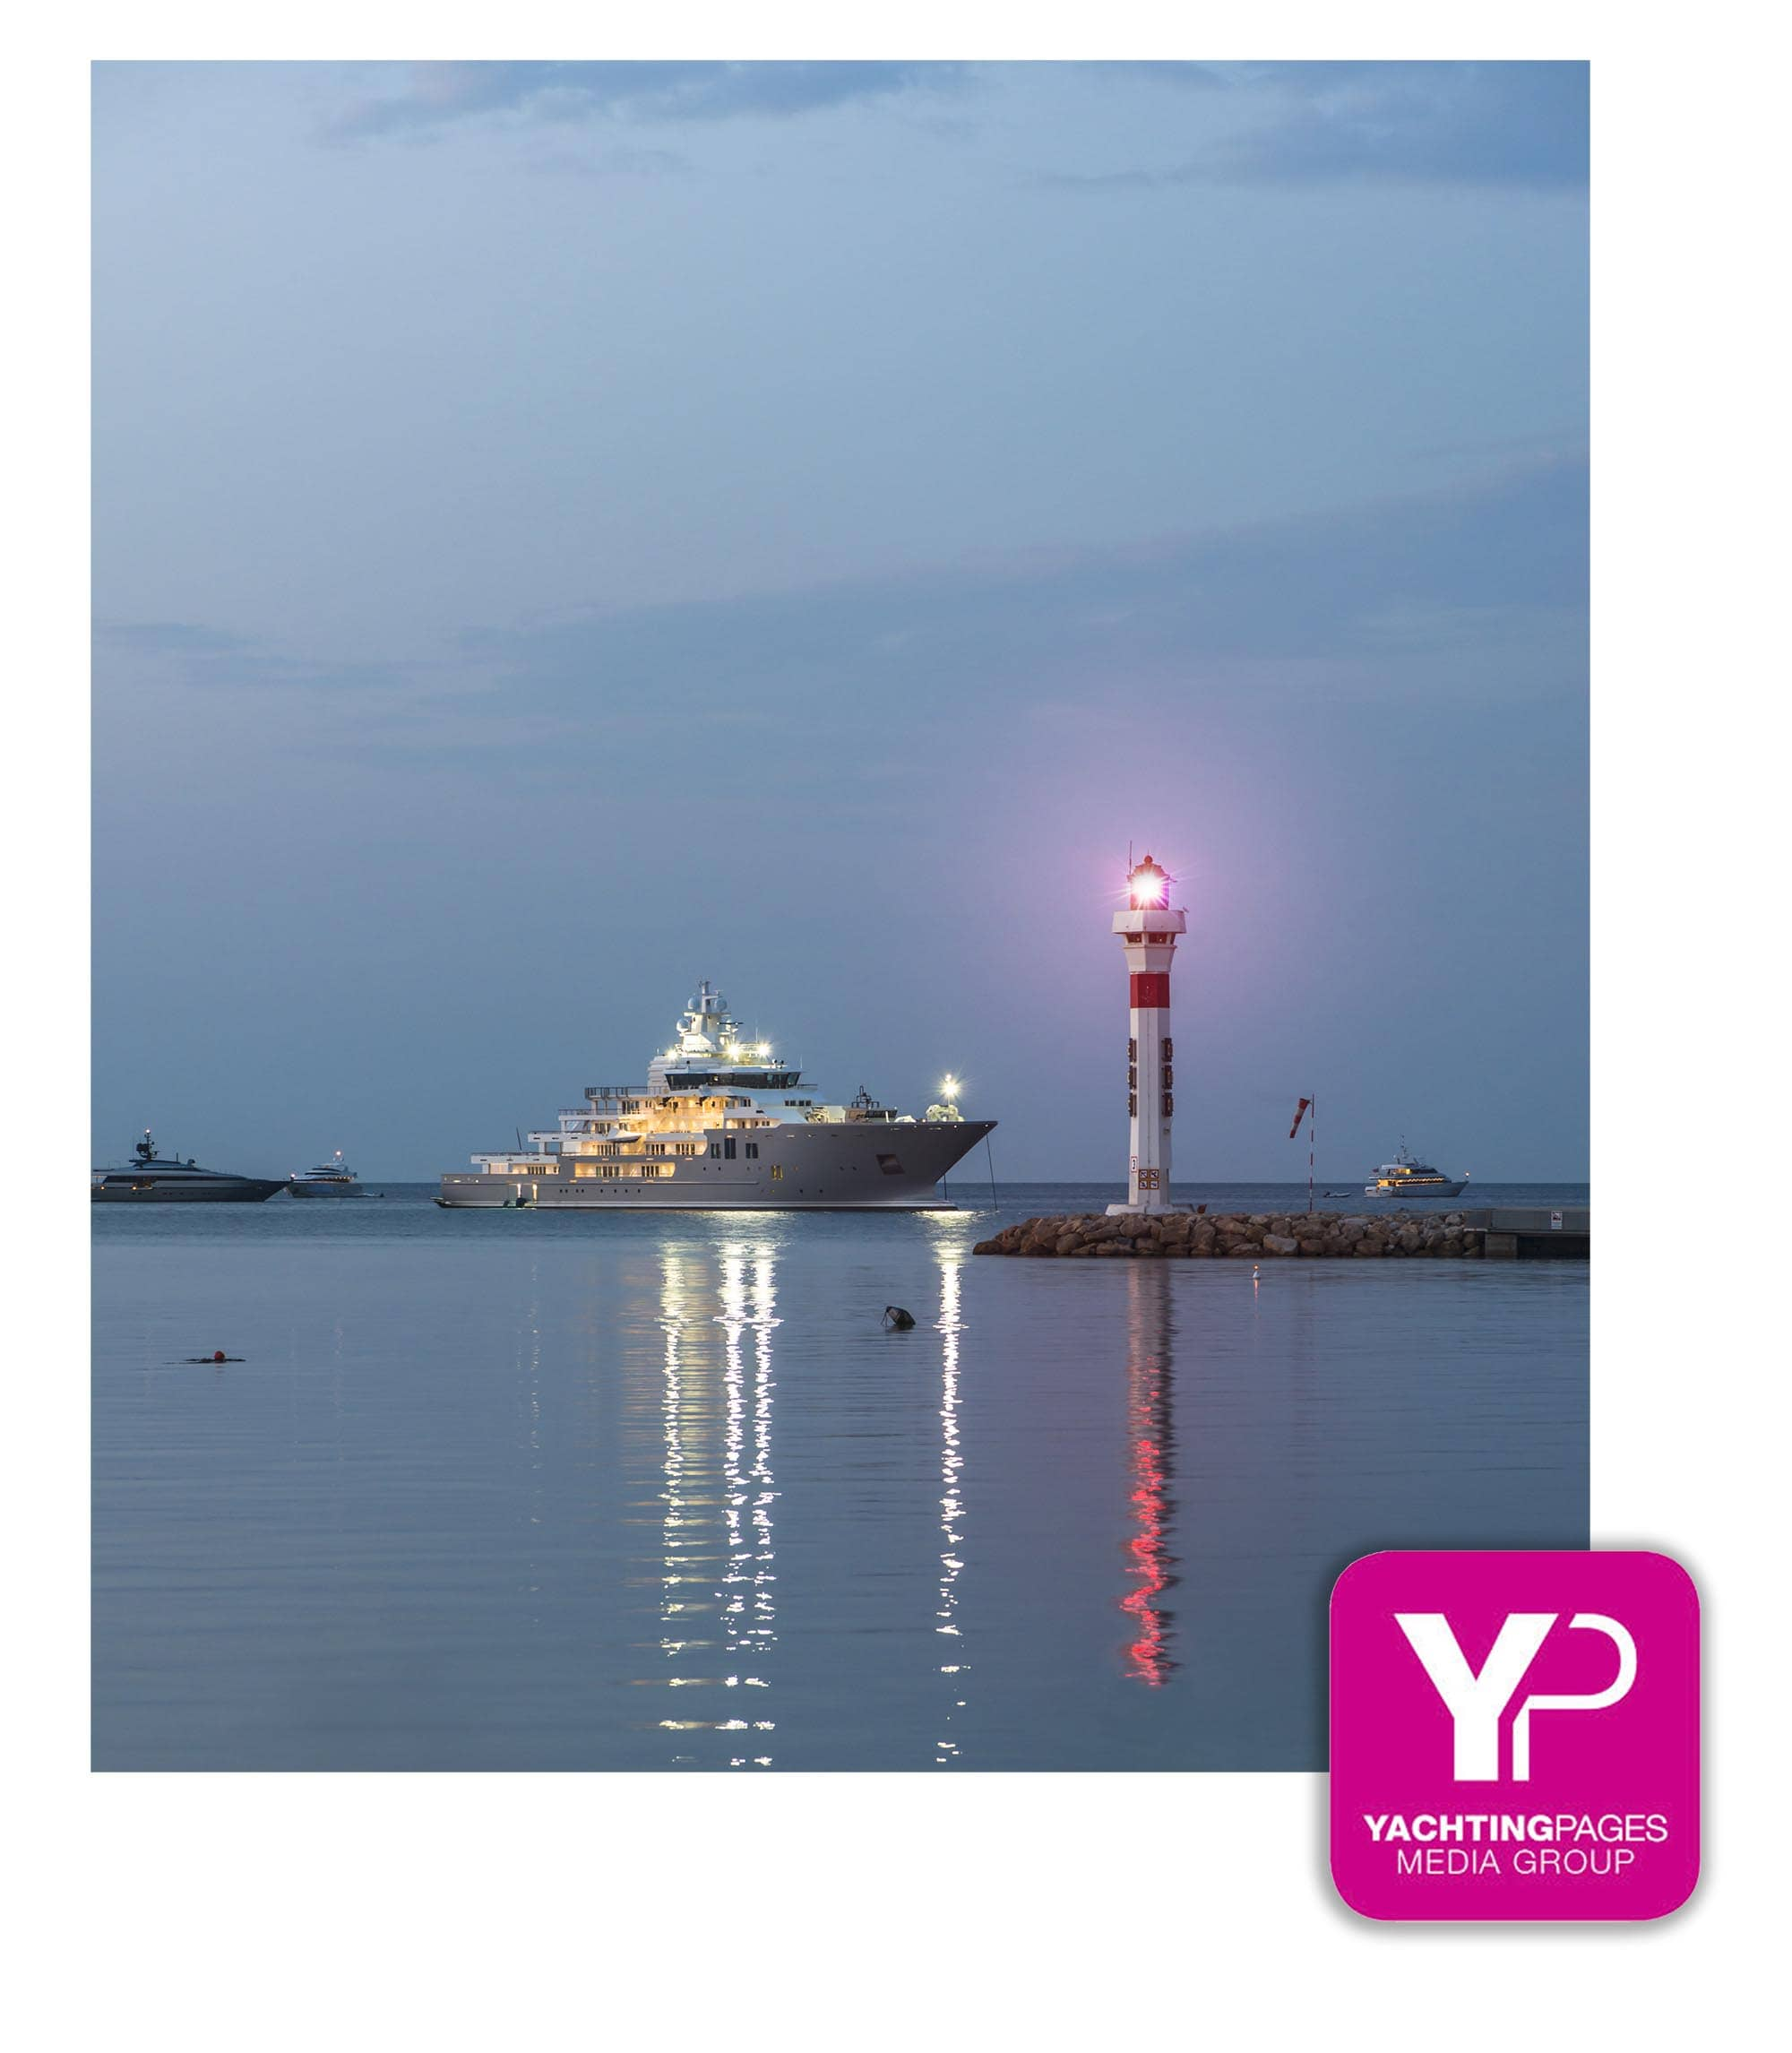 marketing review from bristol with a yacht company